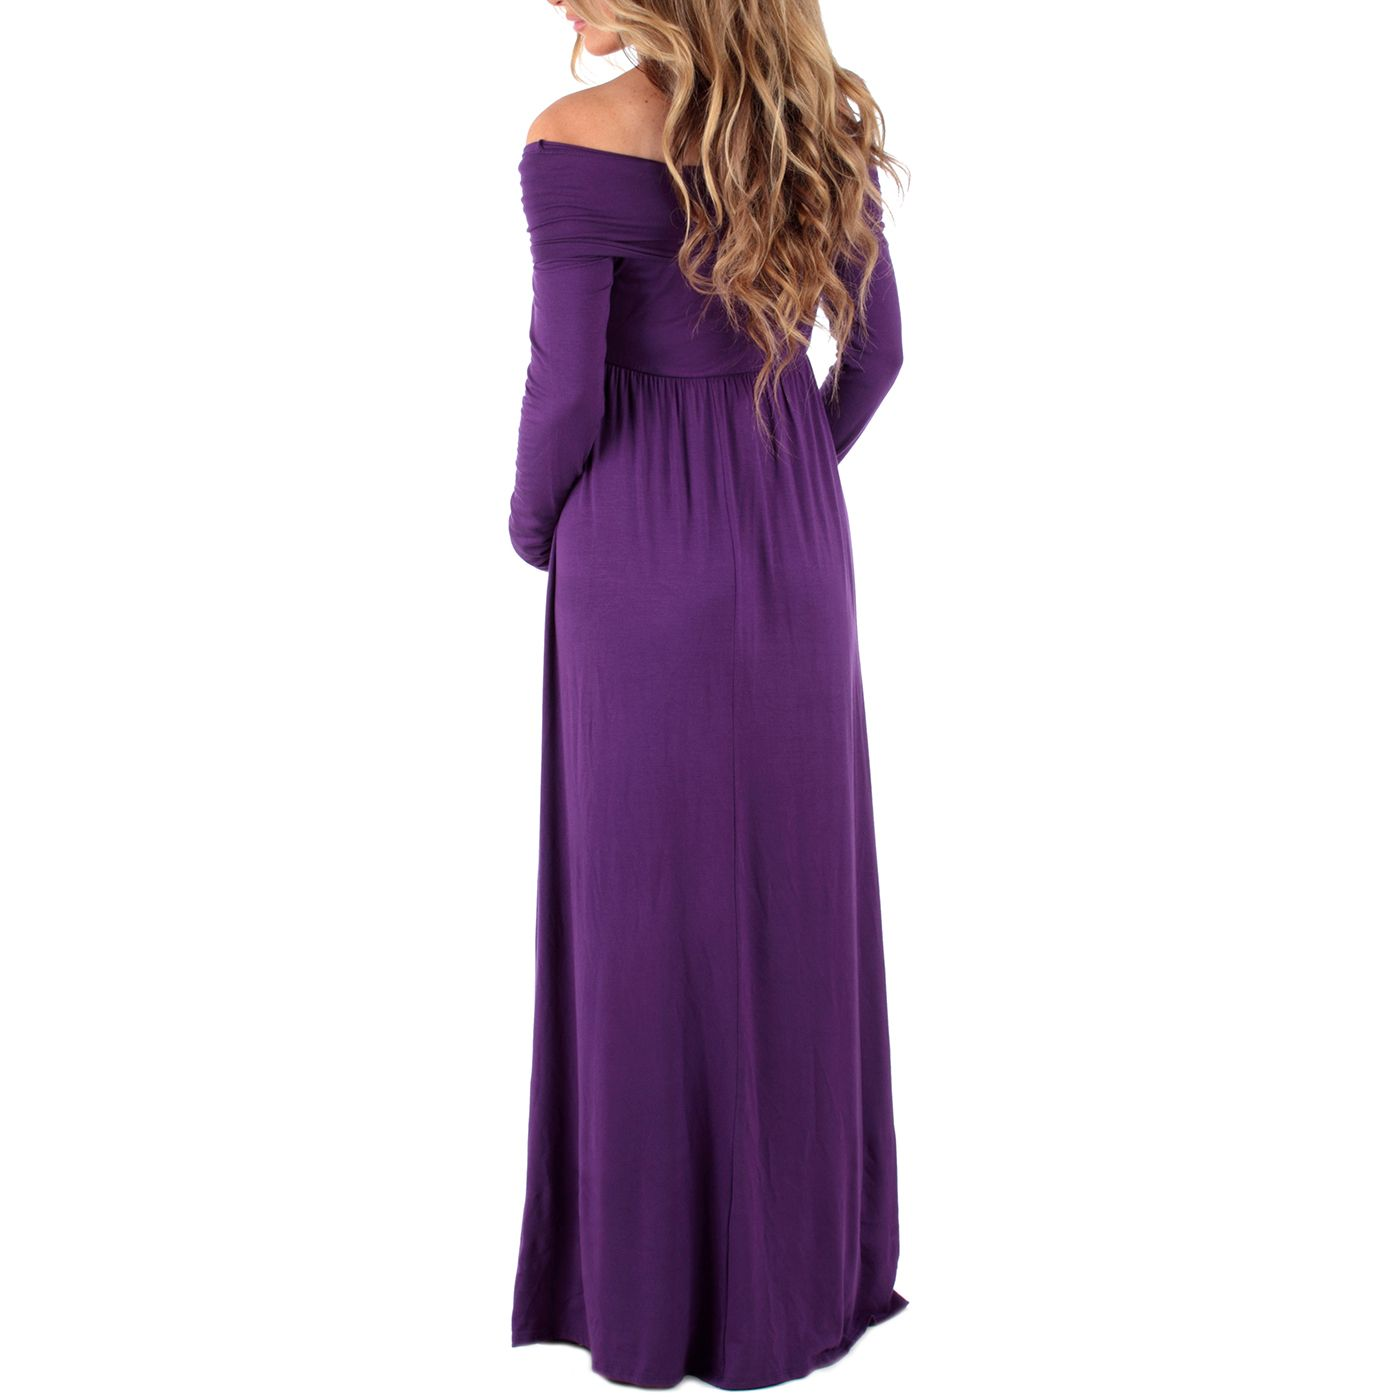 Mother Bee Cowl Neck And Over The Shoulder Maternity Dress Walmart Com Maxi Dress Maxi Dress With Sleeves Maternity Long Dress [ 1400 x 1400 Pixel ]